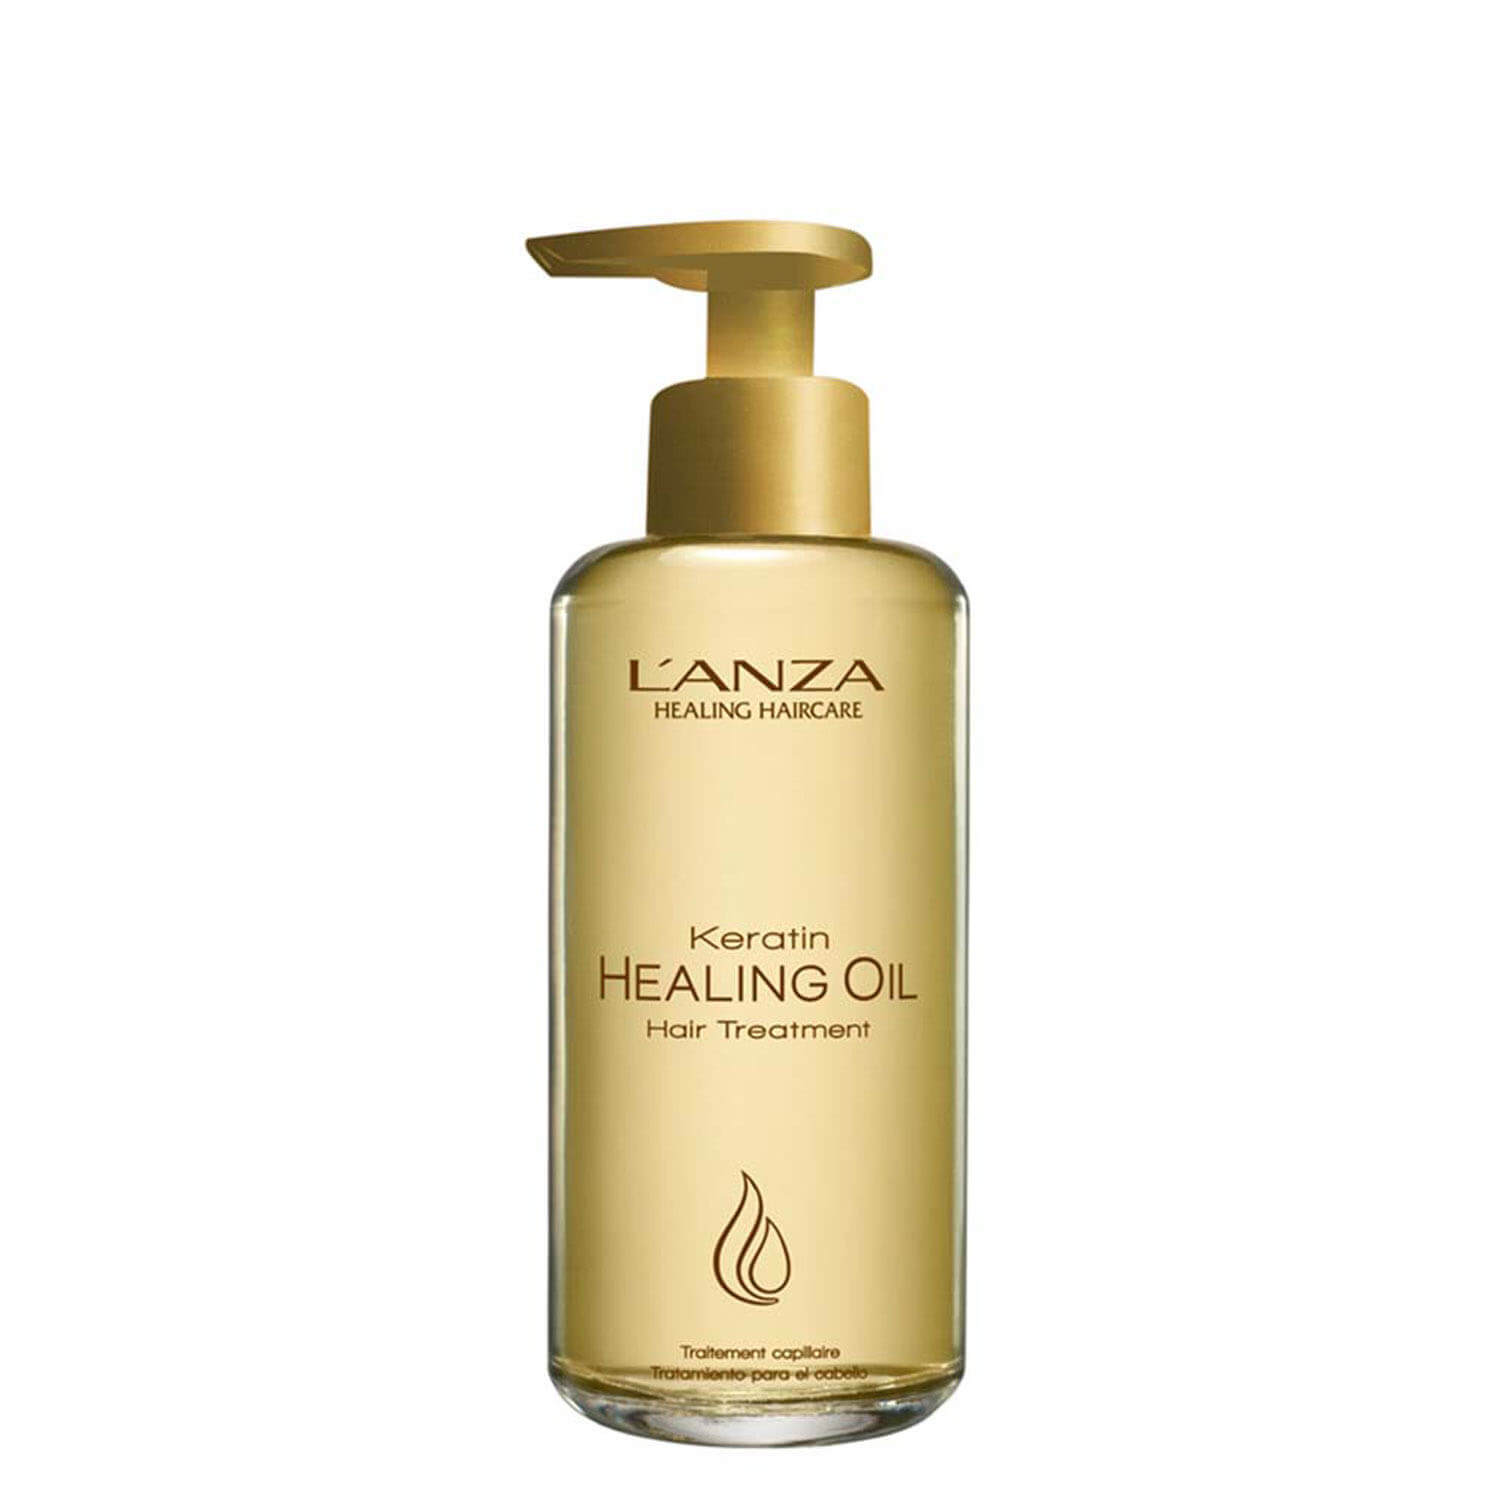 Keratin Healing Oil - Hair Treatment - 100ml